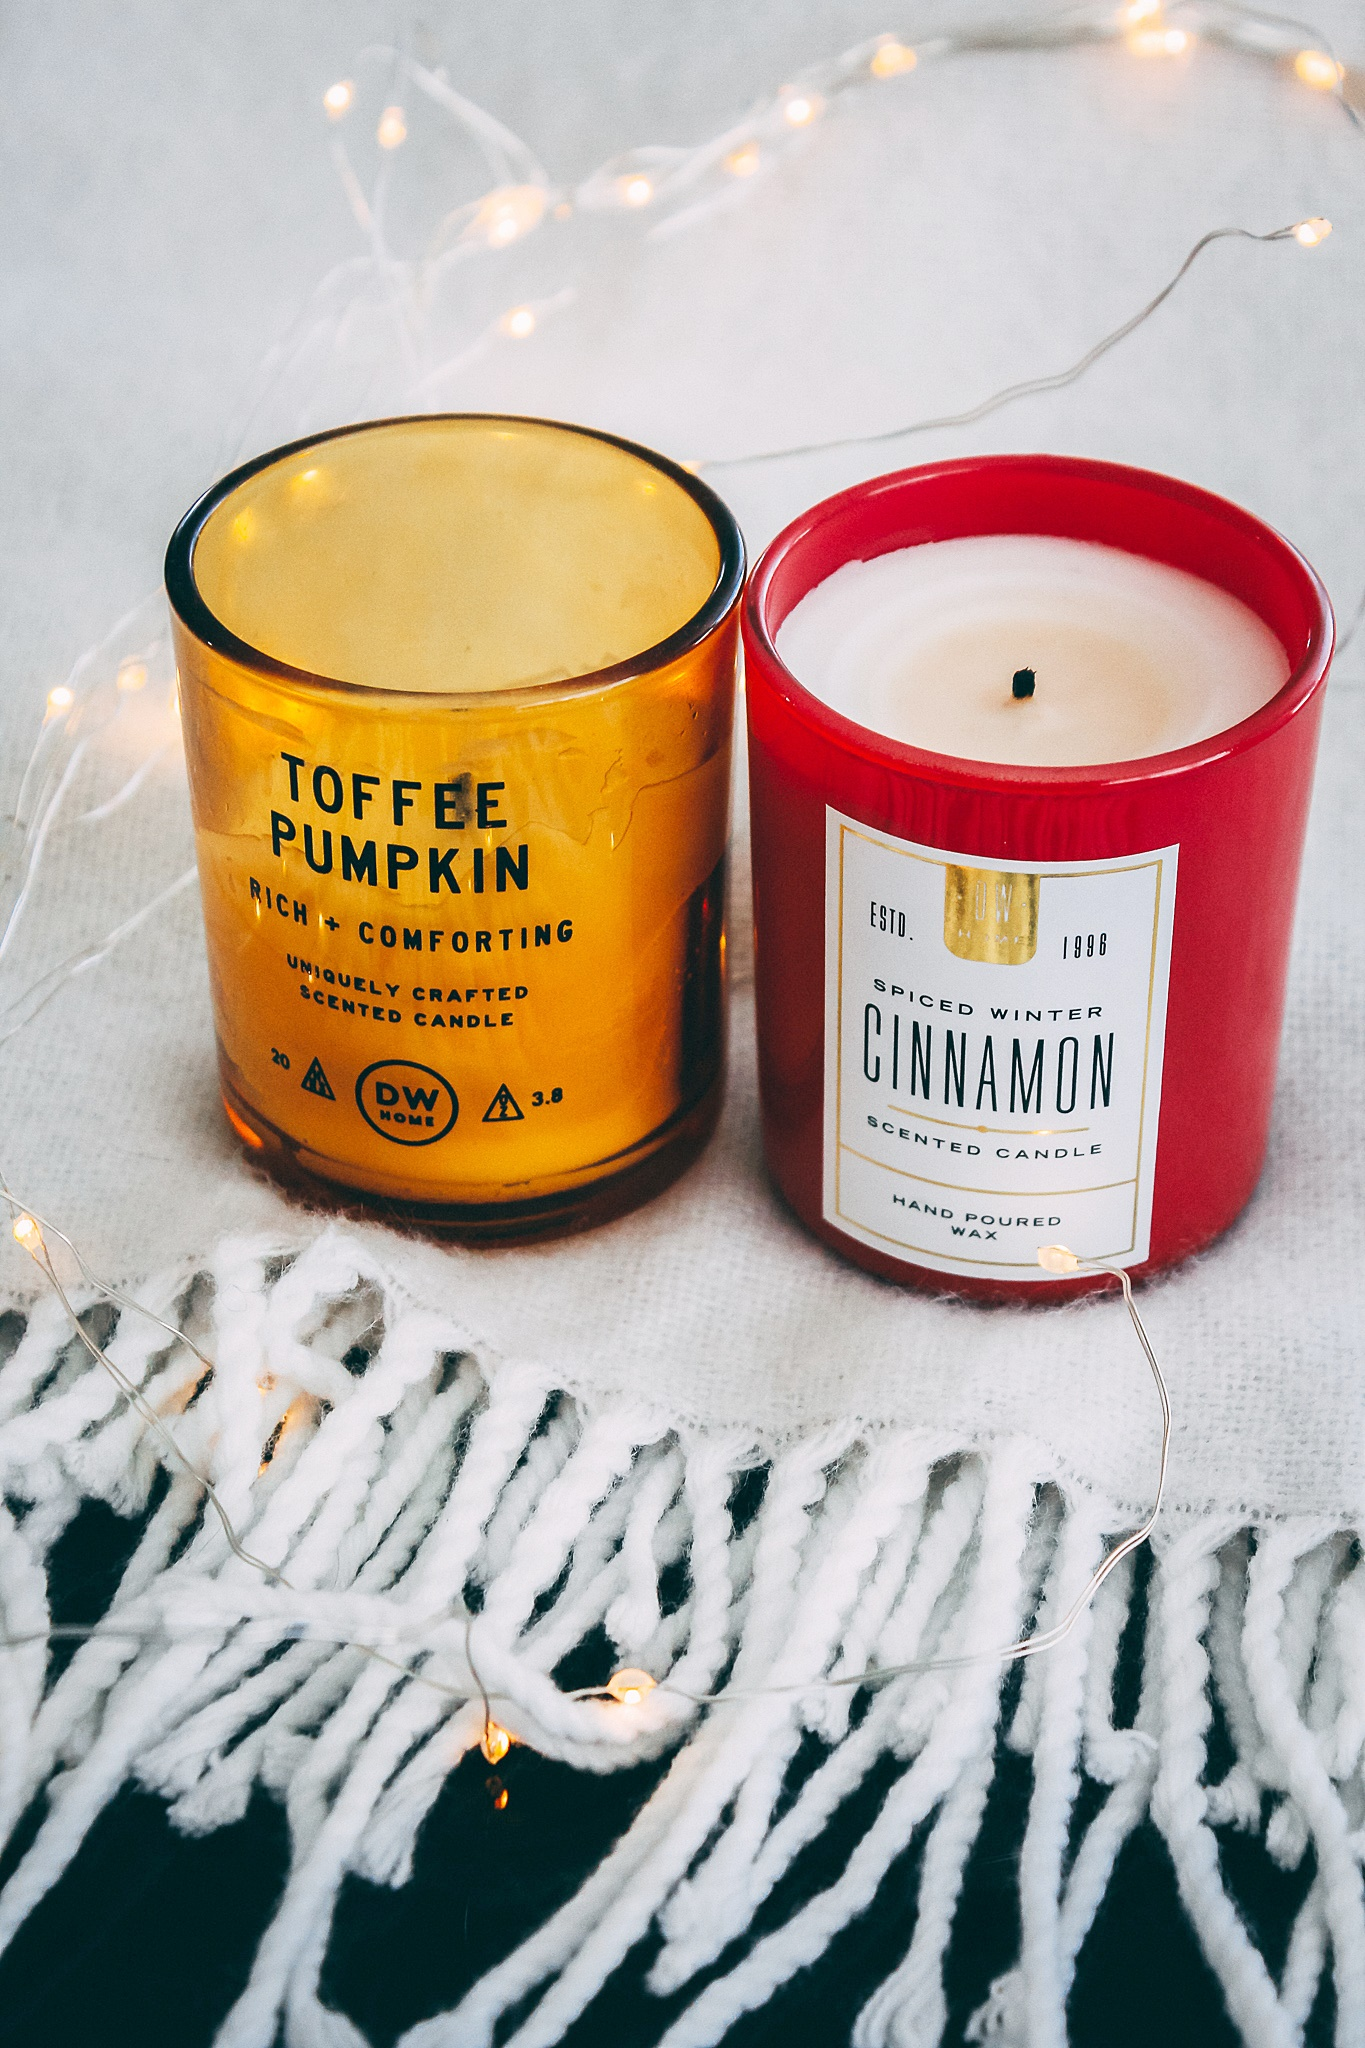 DW Home Candles, Toffee Pumpkin candle, Spiced Winter Cinnamon candle